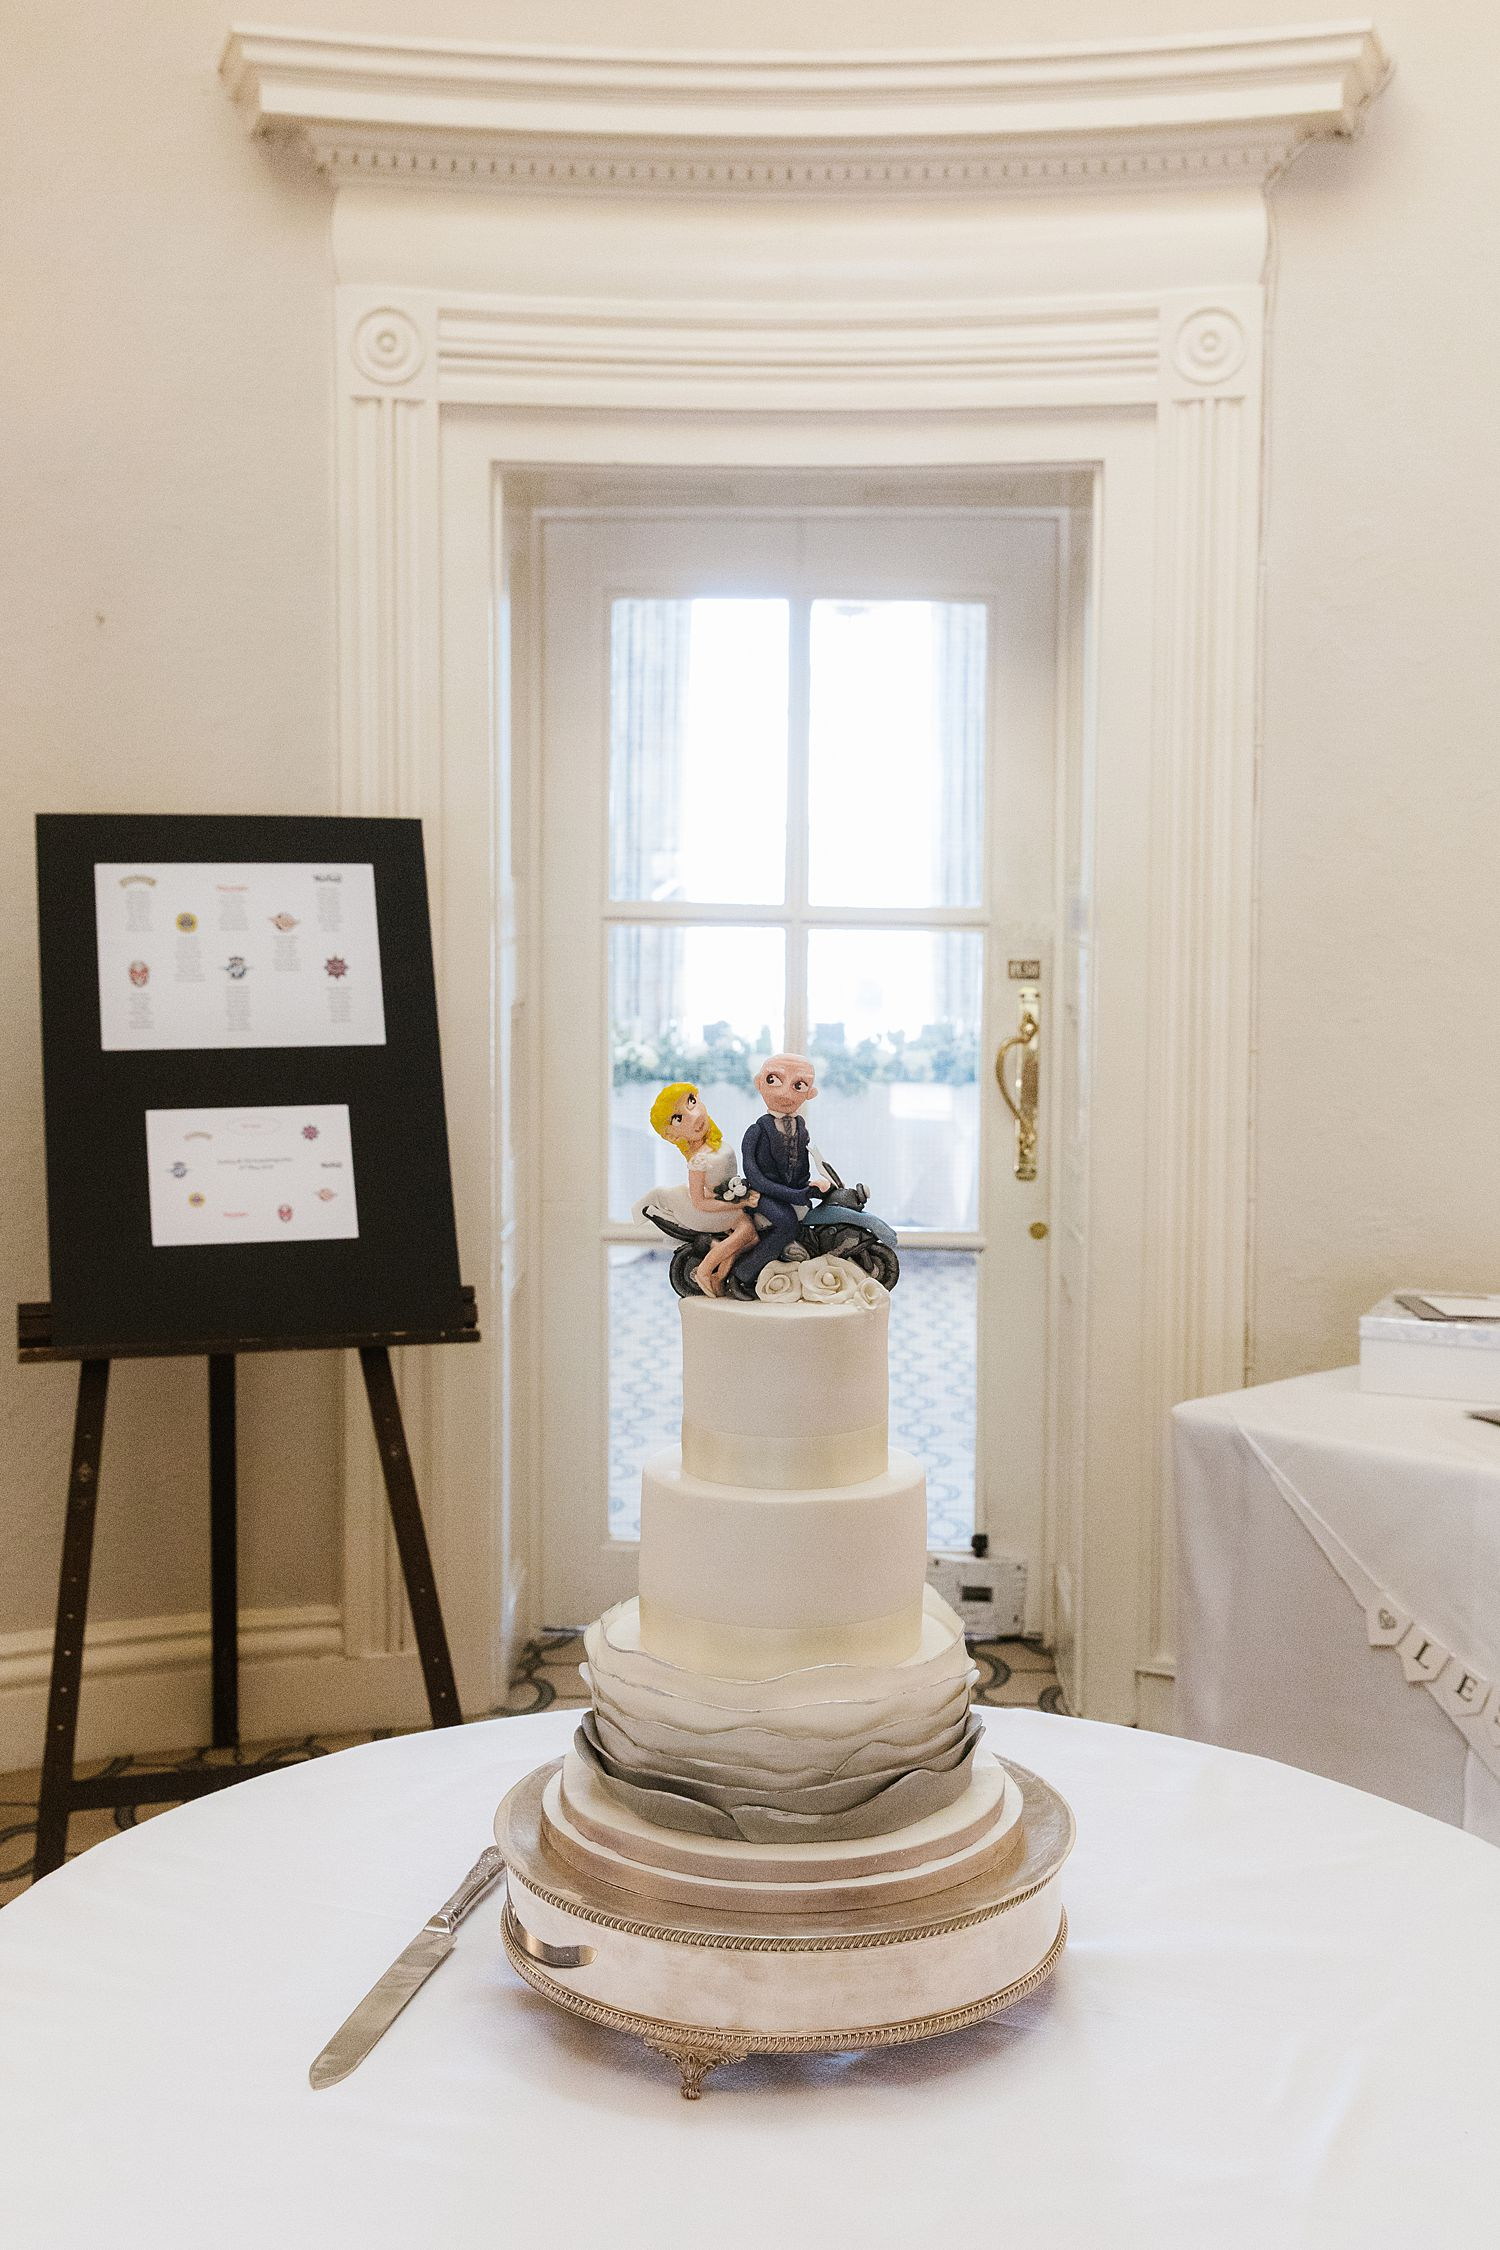 Wedding cake and table plan for Storrs Hall wedding, Bowness on Windermere